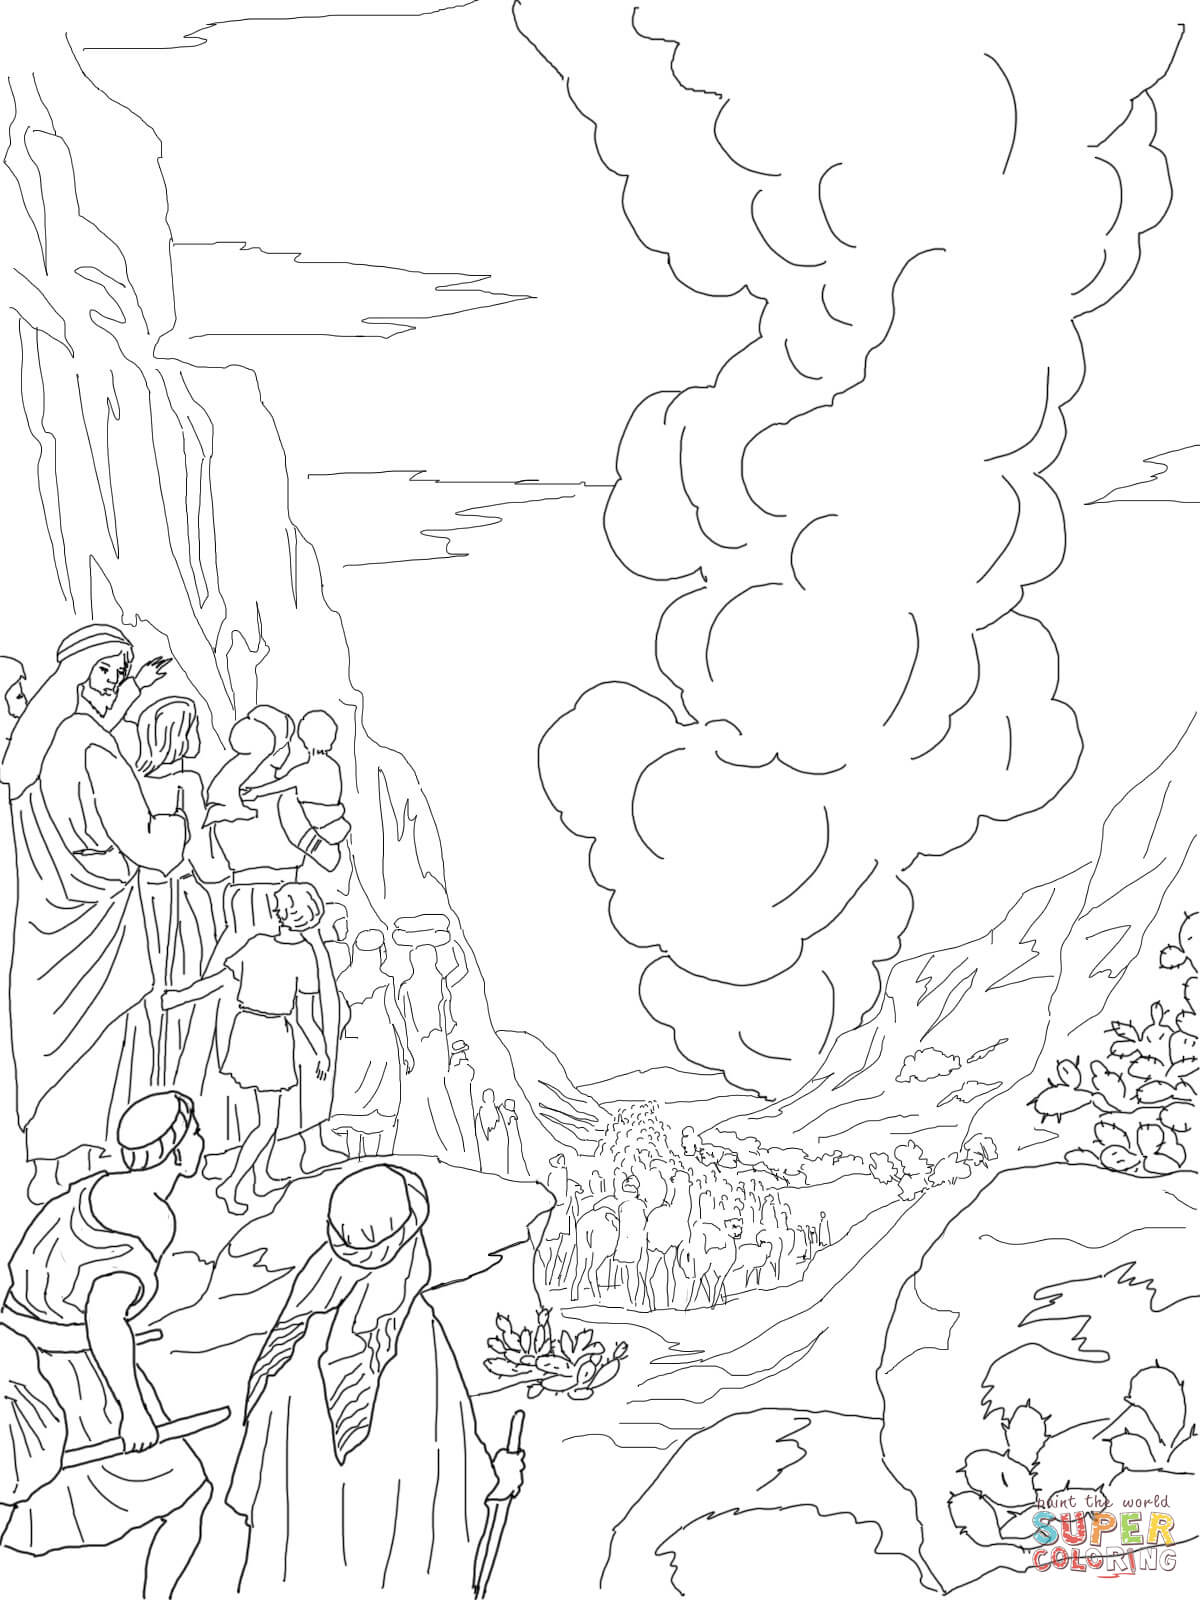 1200x1600 Pillar Of Fire And Cloud Coloring Page Free Printable Coloring Pages